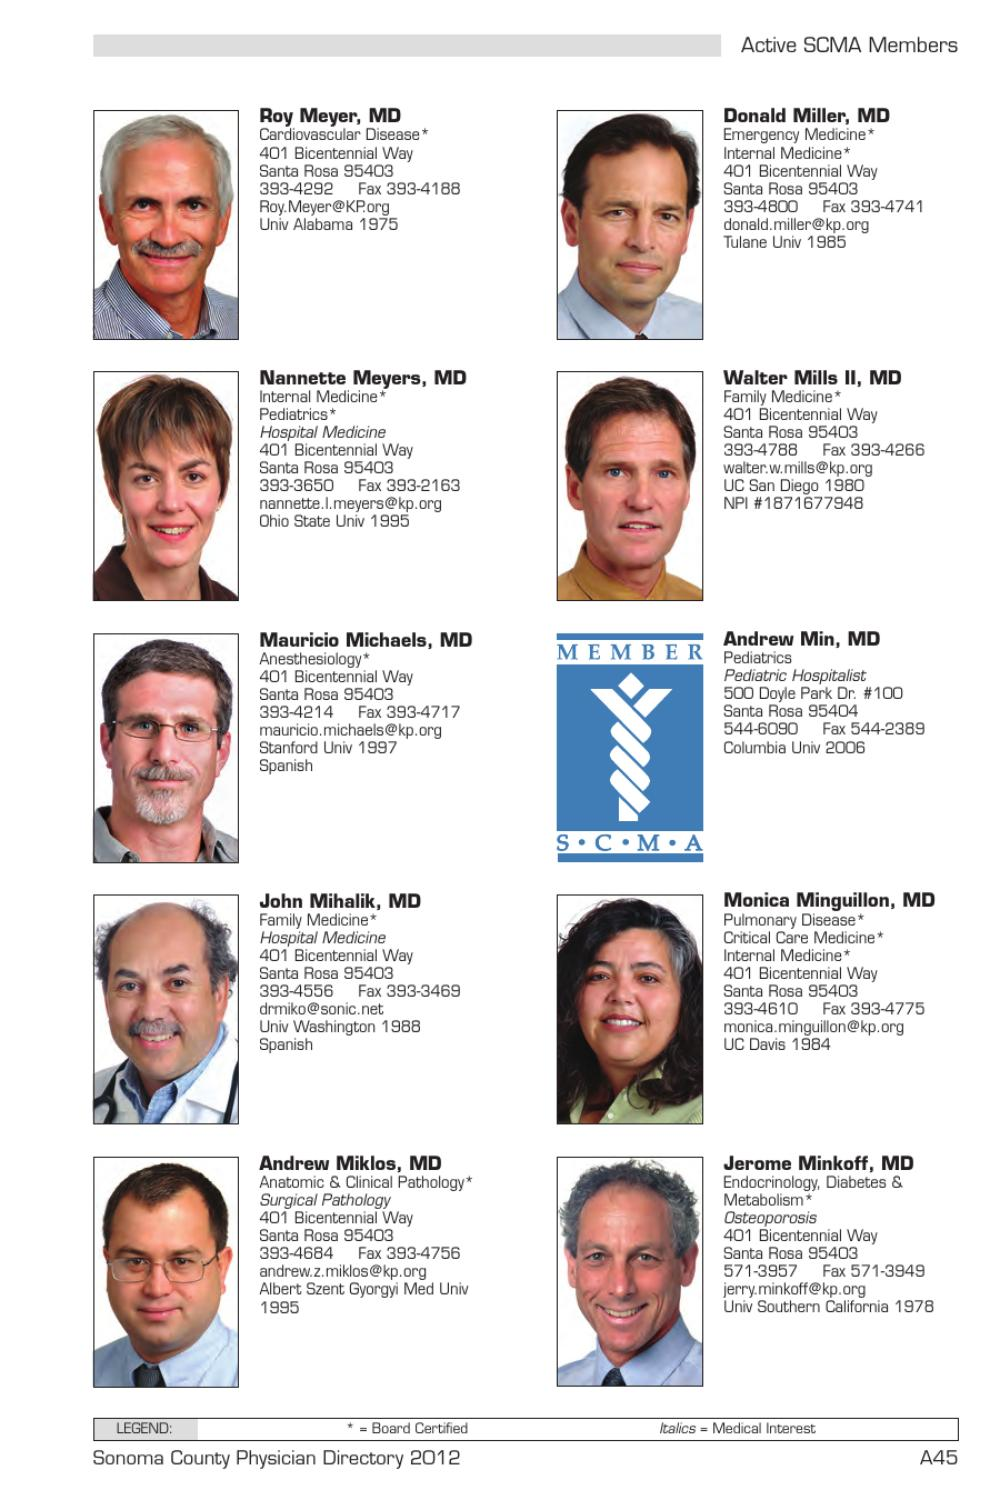 Sonoma County Physician Directory 2012 by Sonoma County Medical